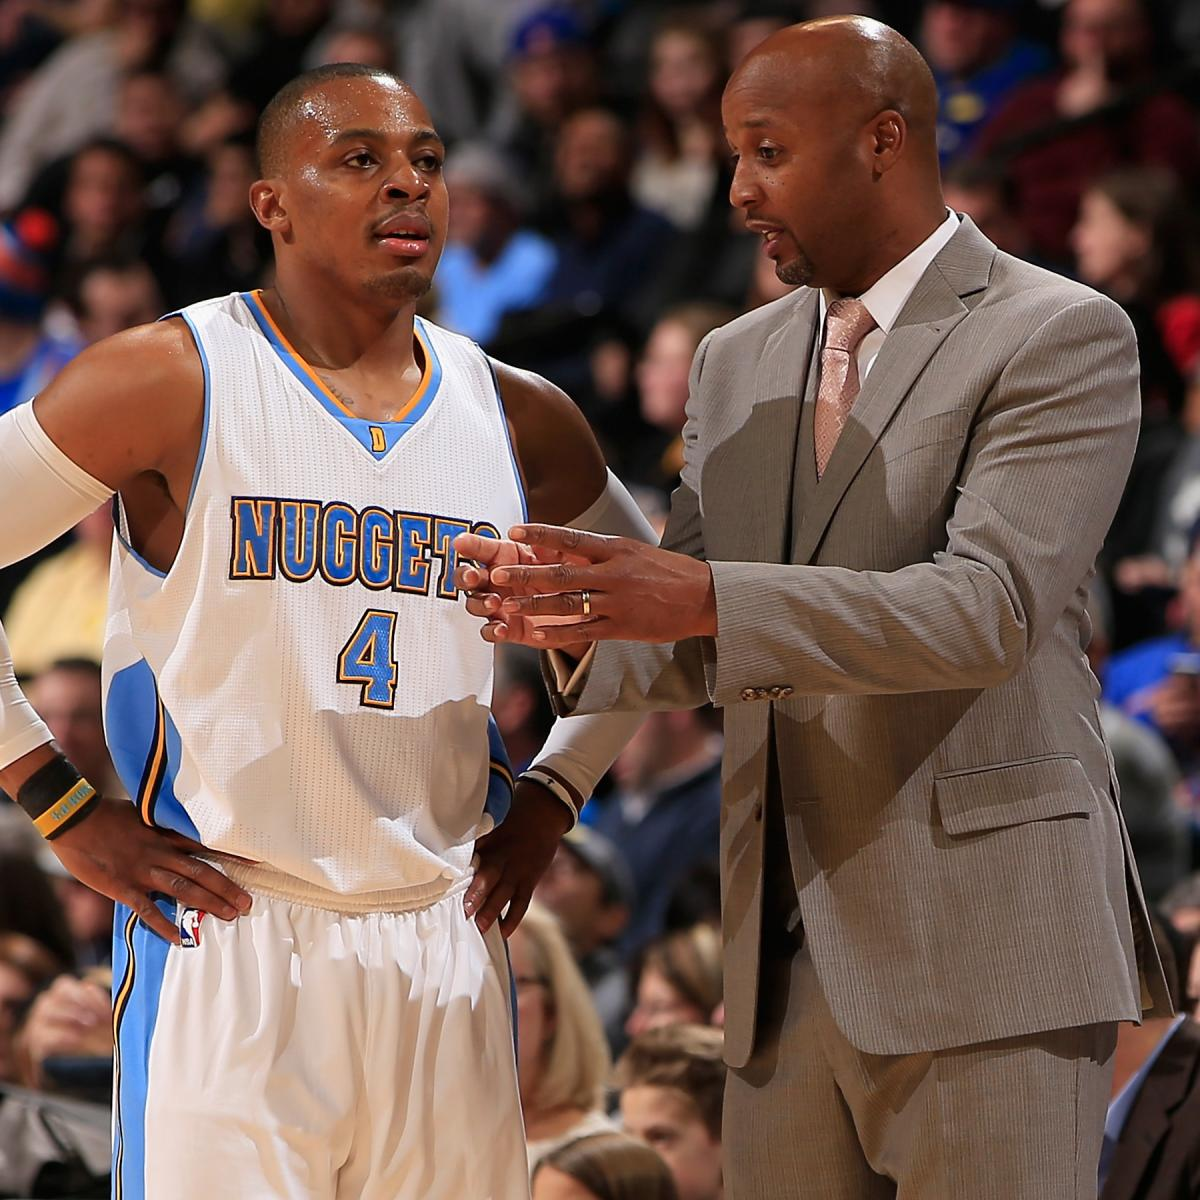 Nuggets Injury Report: Randy Foye Injury: Updates On Nuggets Guard's Hamstring